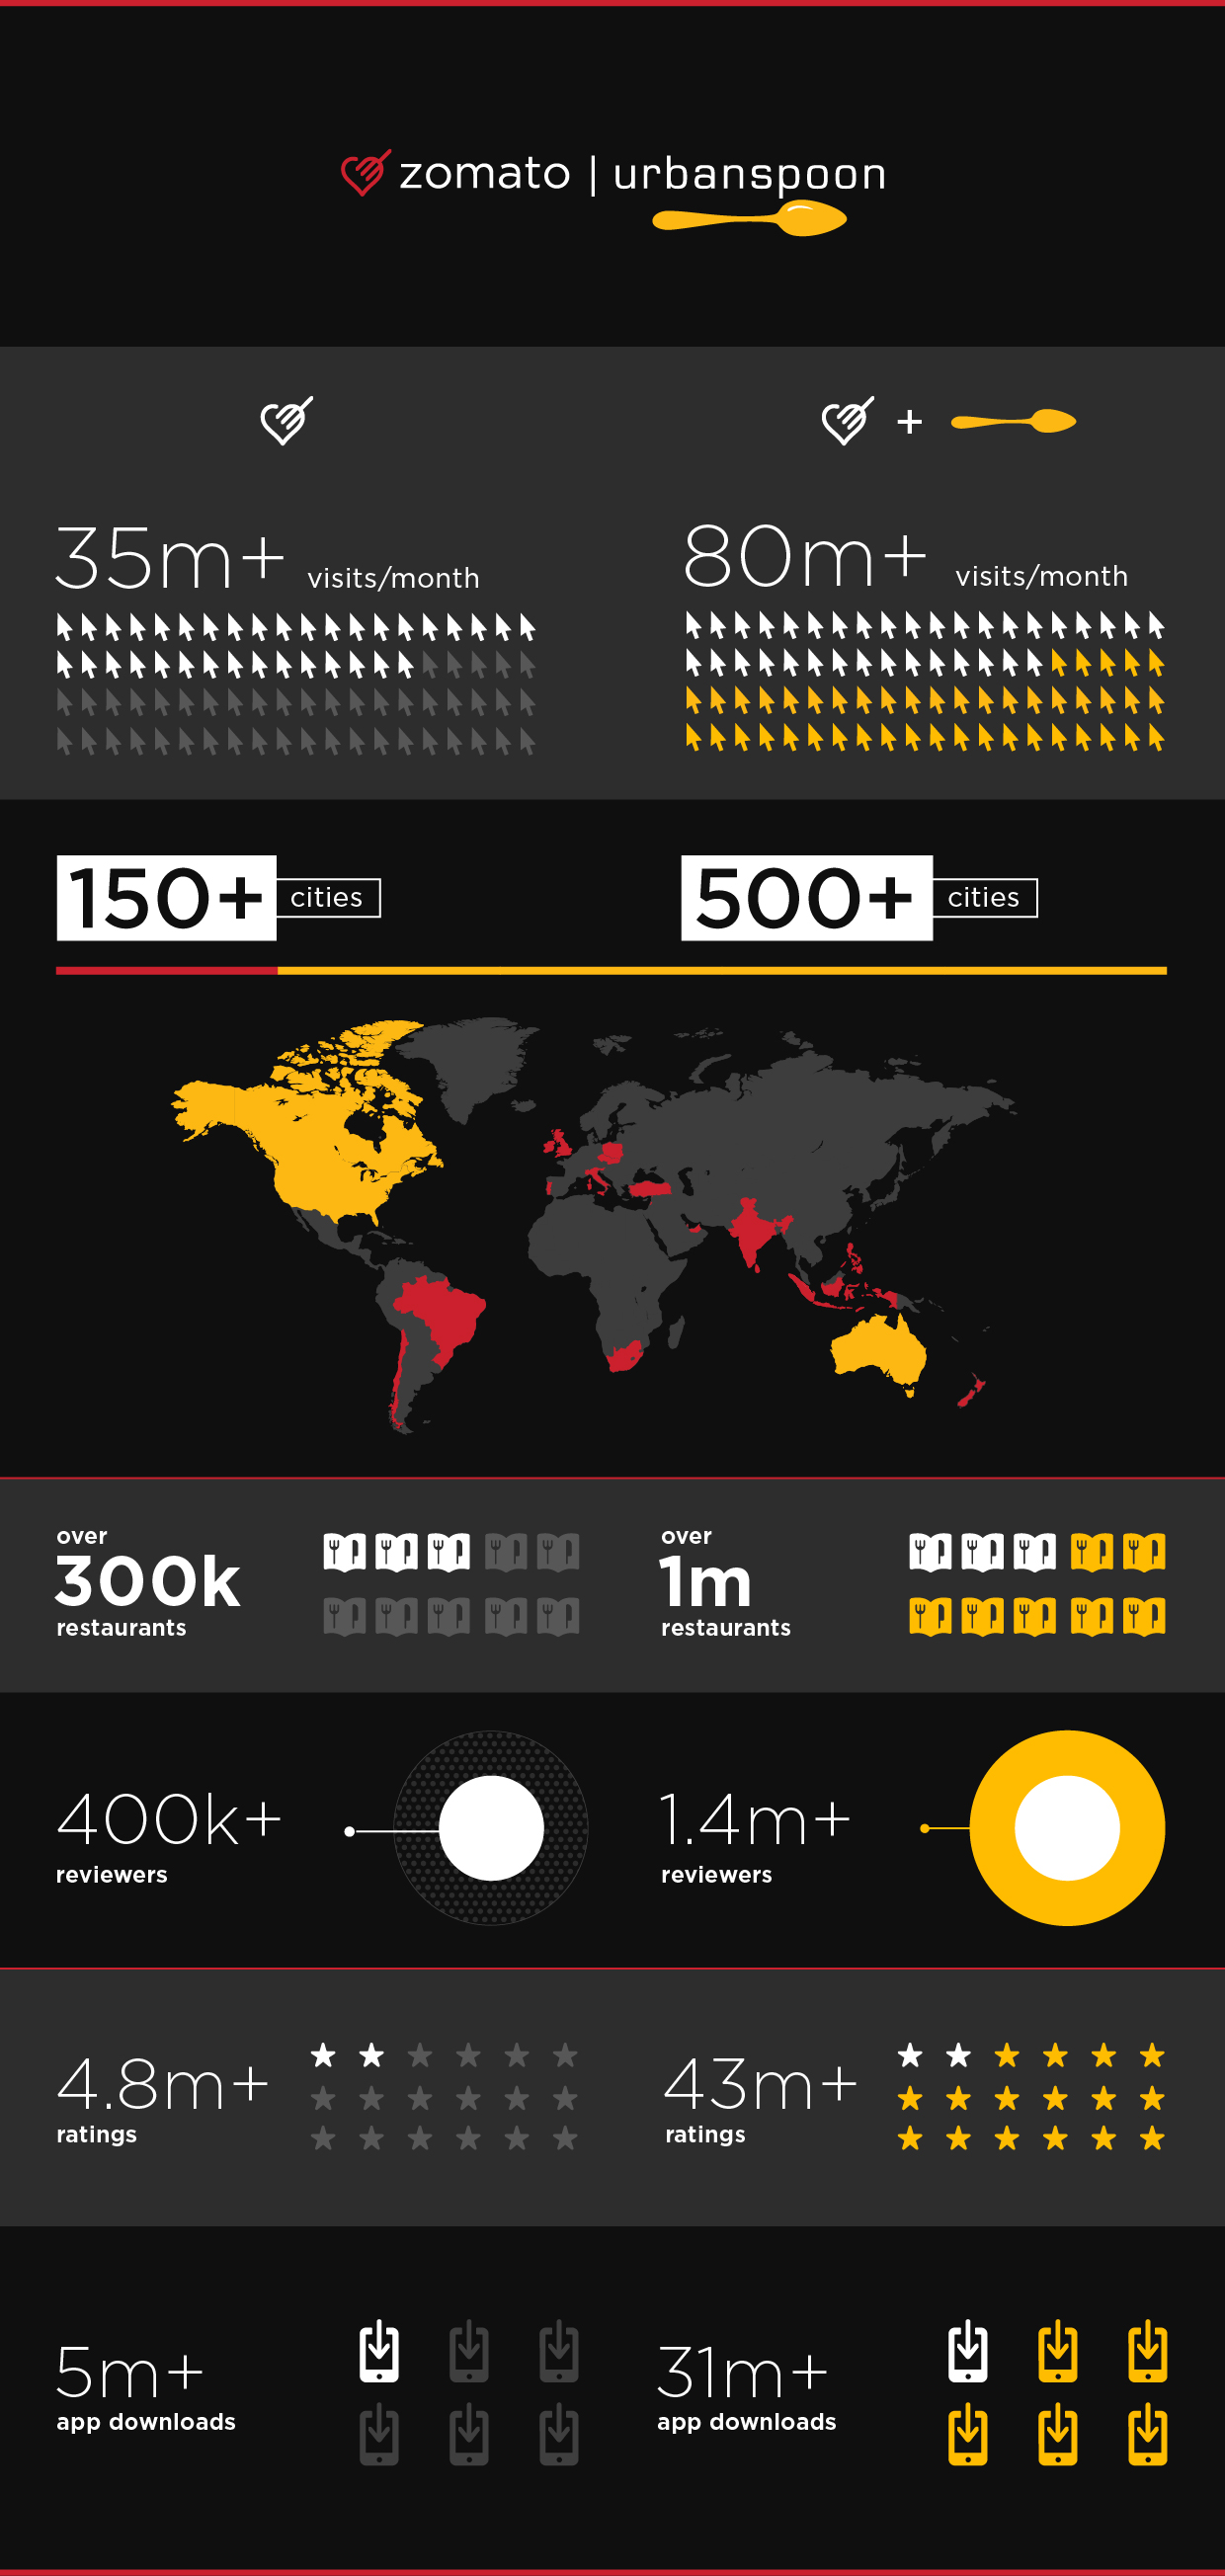 Zomato-Urbanspoon-Infographic